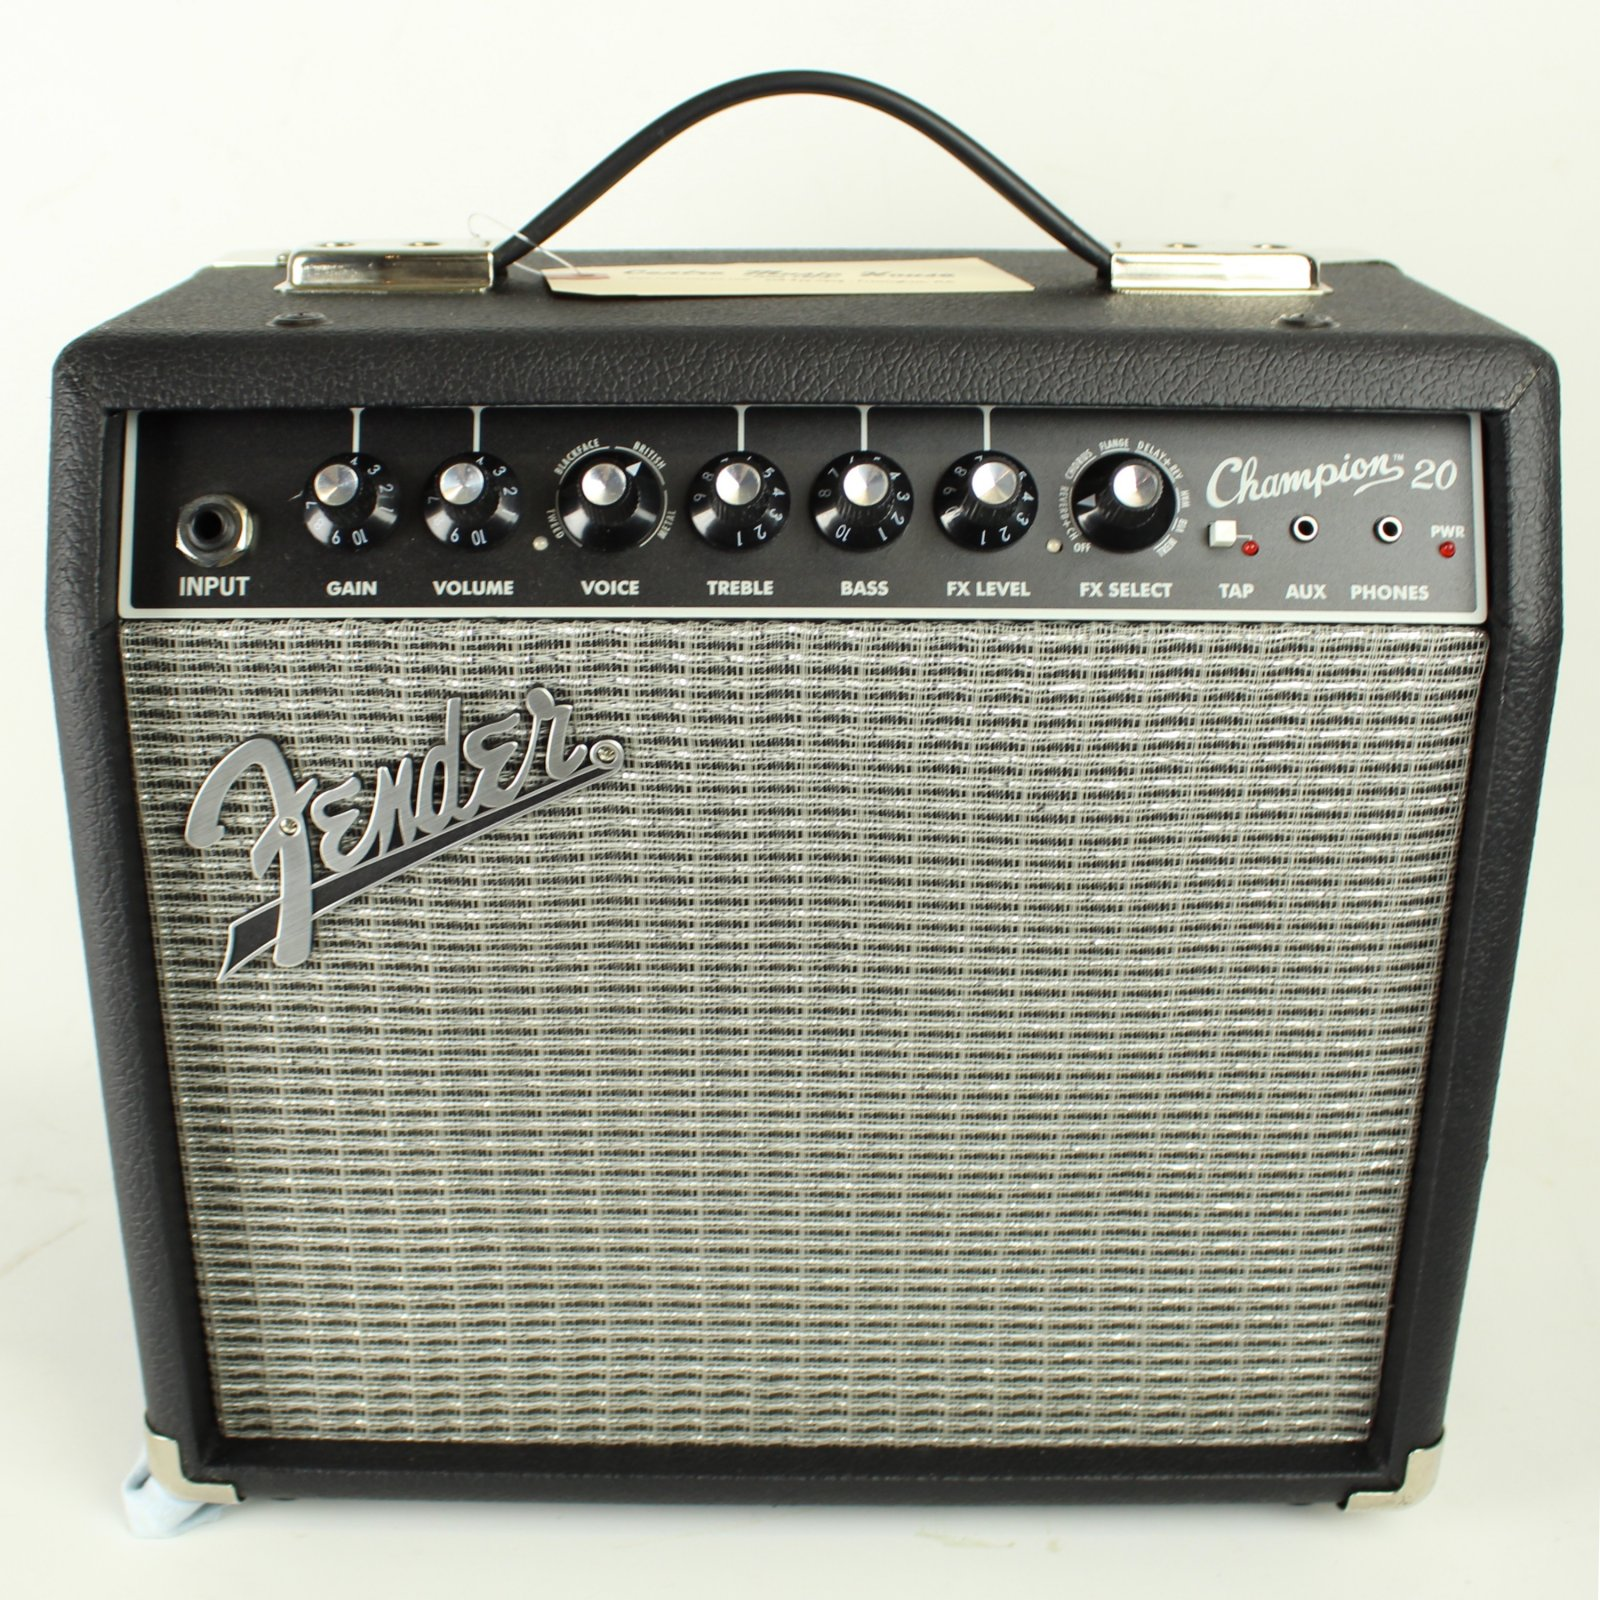 Fender Champion 20 Electric Guitar Amplifier (USED)